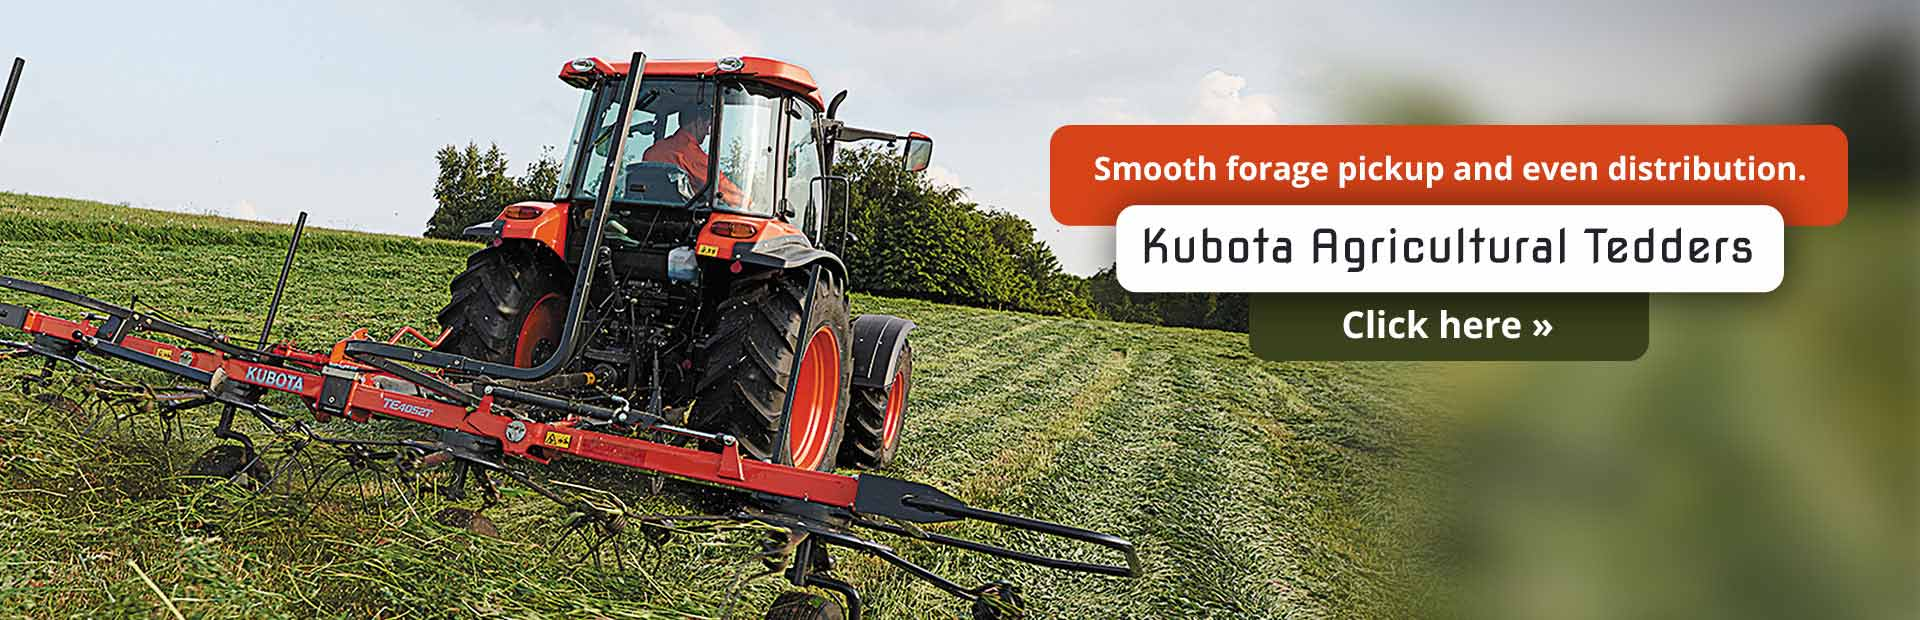 Click here to view our selection of Kubota agricultural tedders!